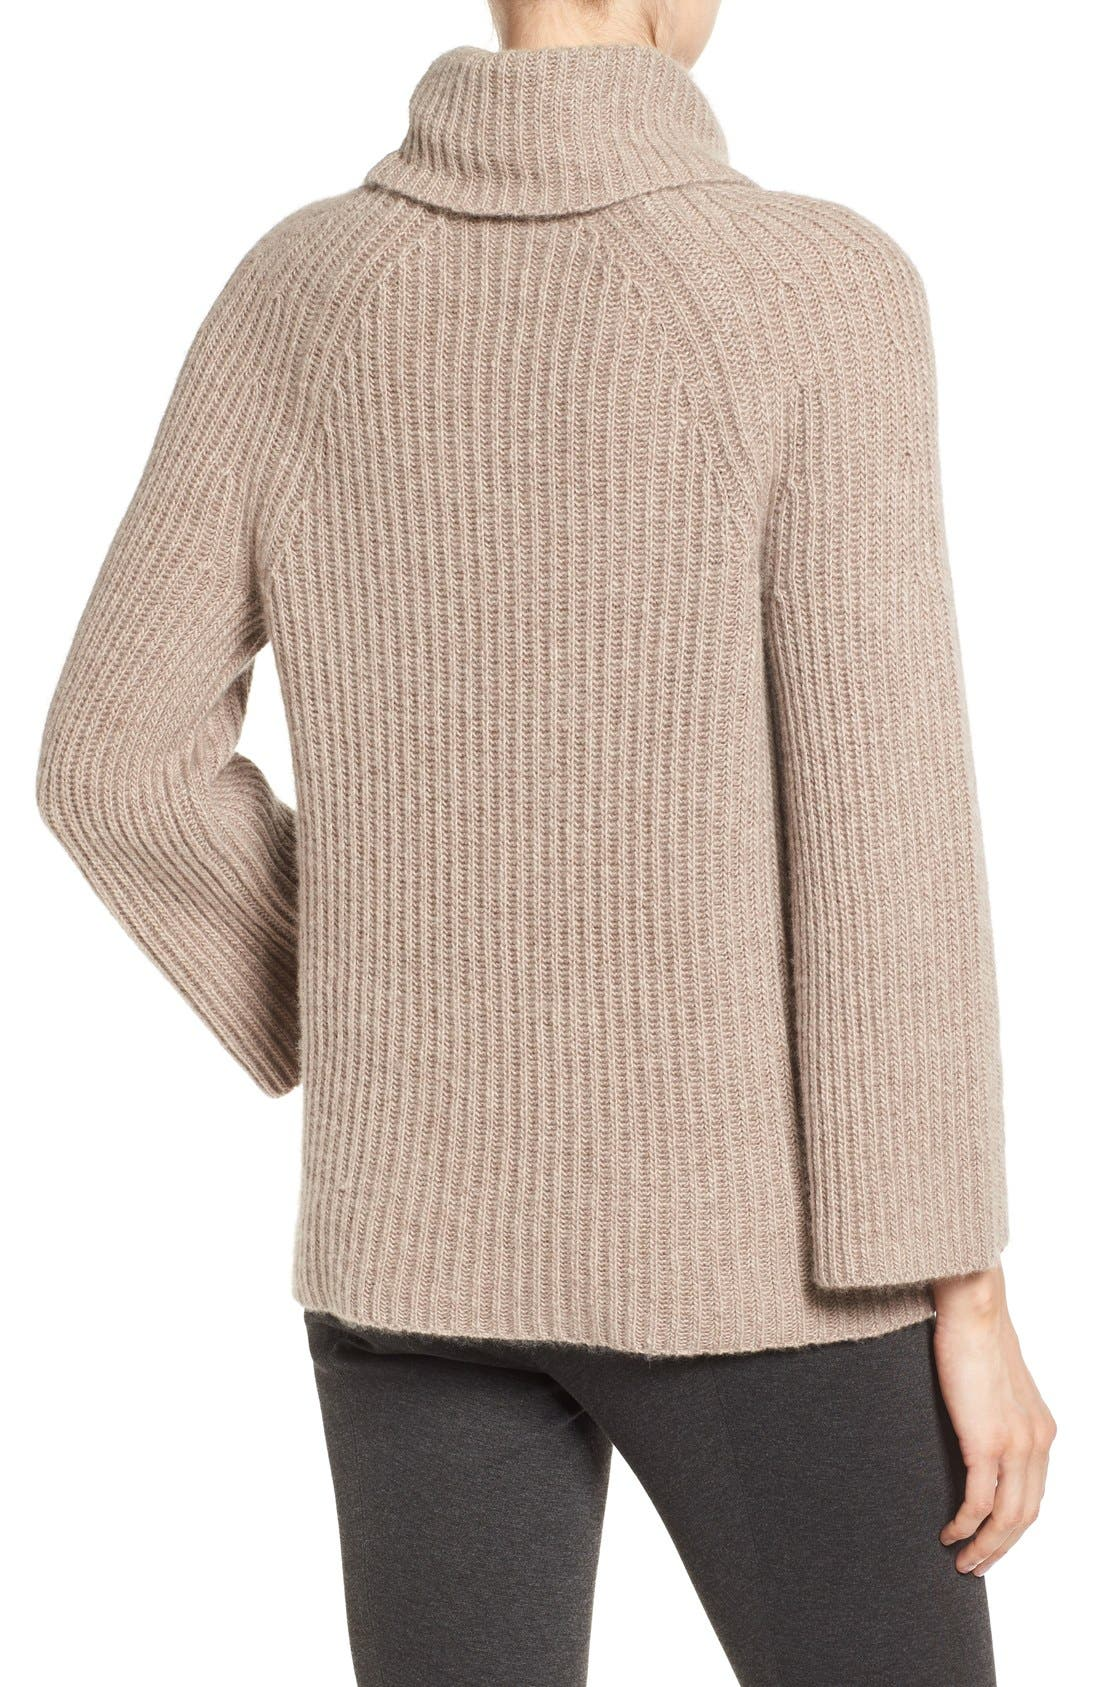 Alternate Image 3  - Halogen® Ribbed Cashmere Turtleneck Sweater (Regular & Petite)